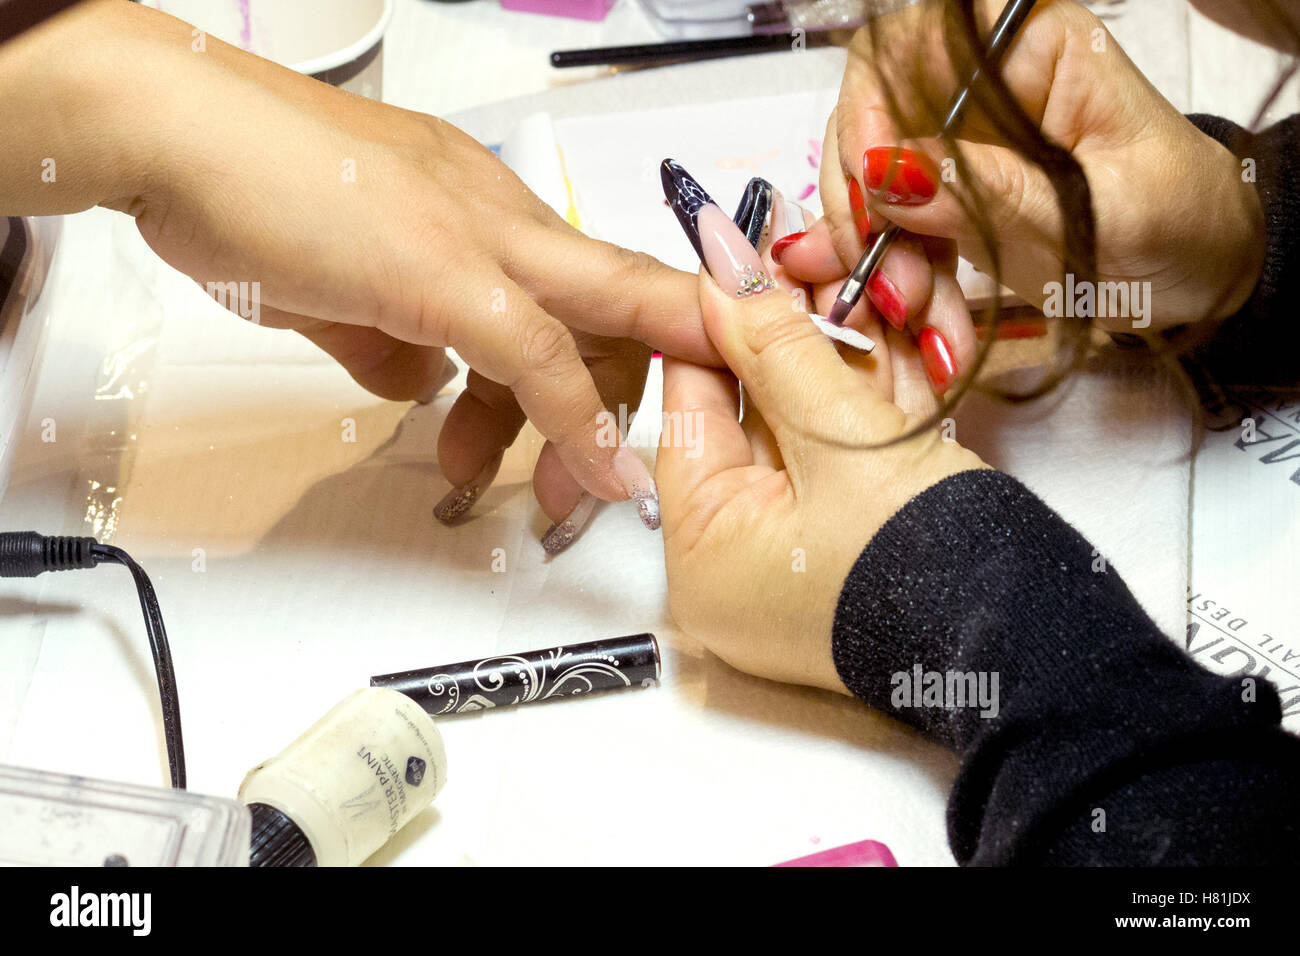 Hand Long Nails Isolated Stock Photos & Hand Long Nails Isolated ...